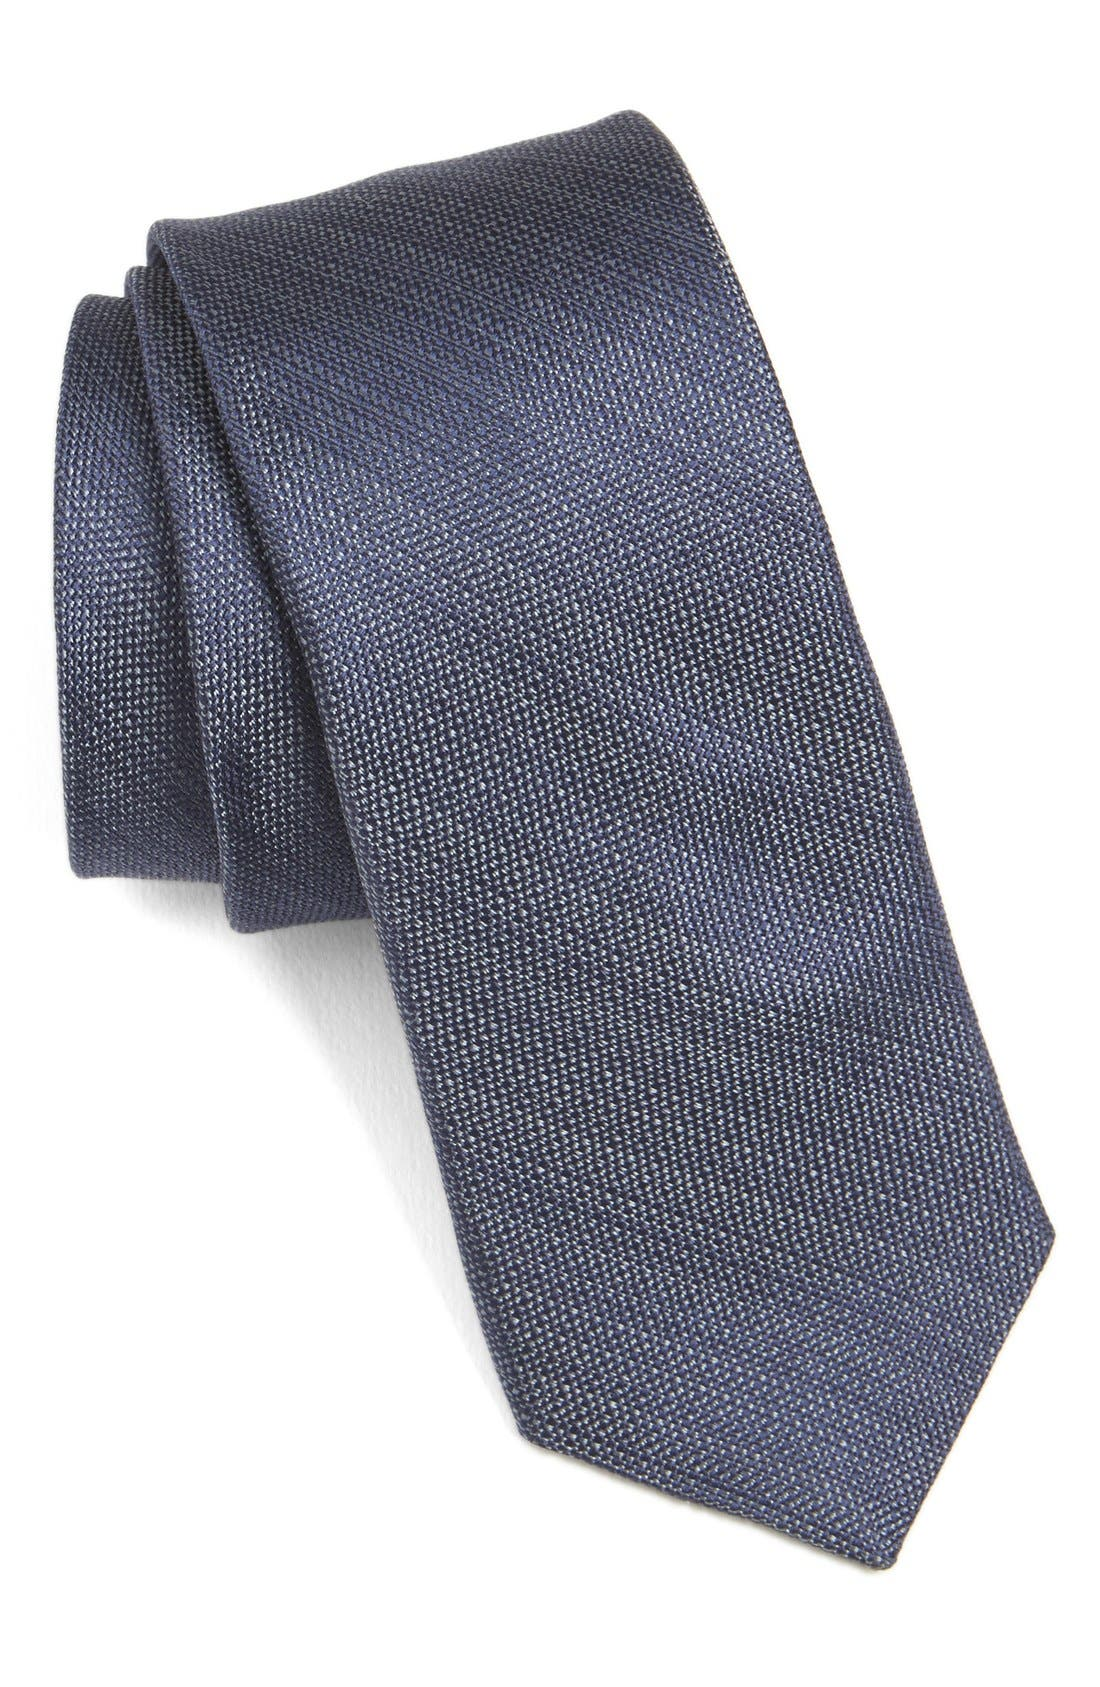 Solid Skinny Silk Tie,                             Main thumbnail 1, color,                             413